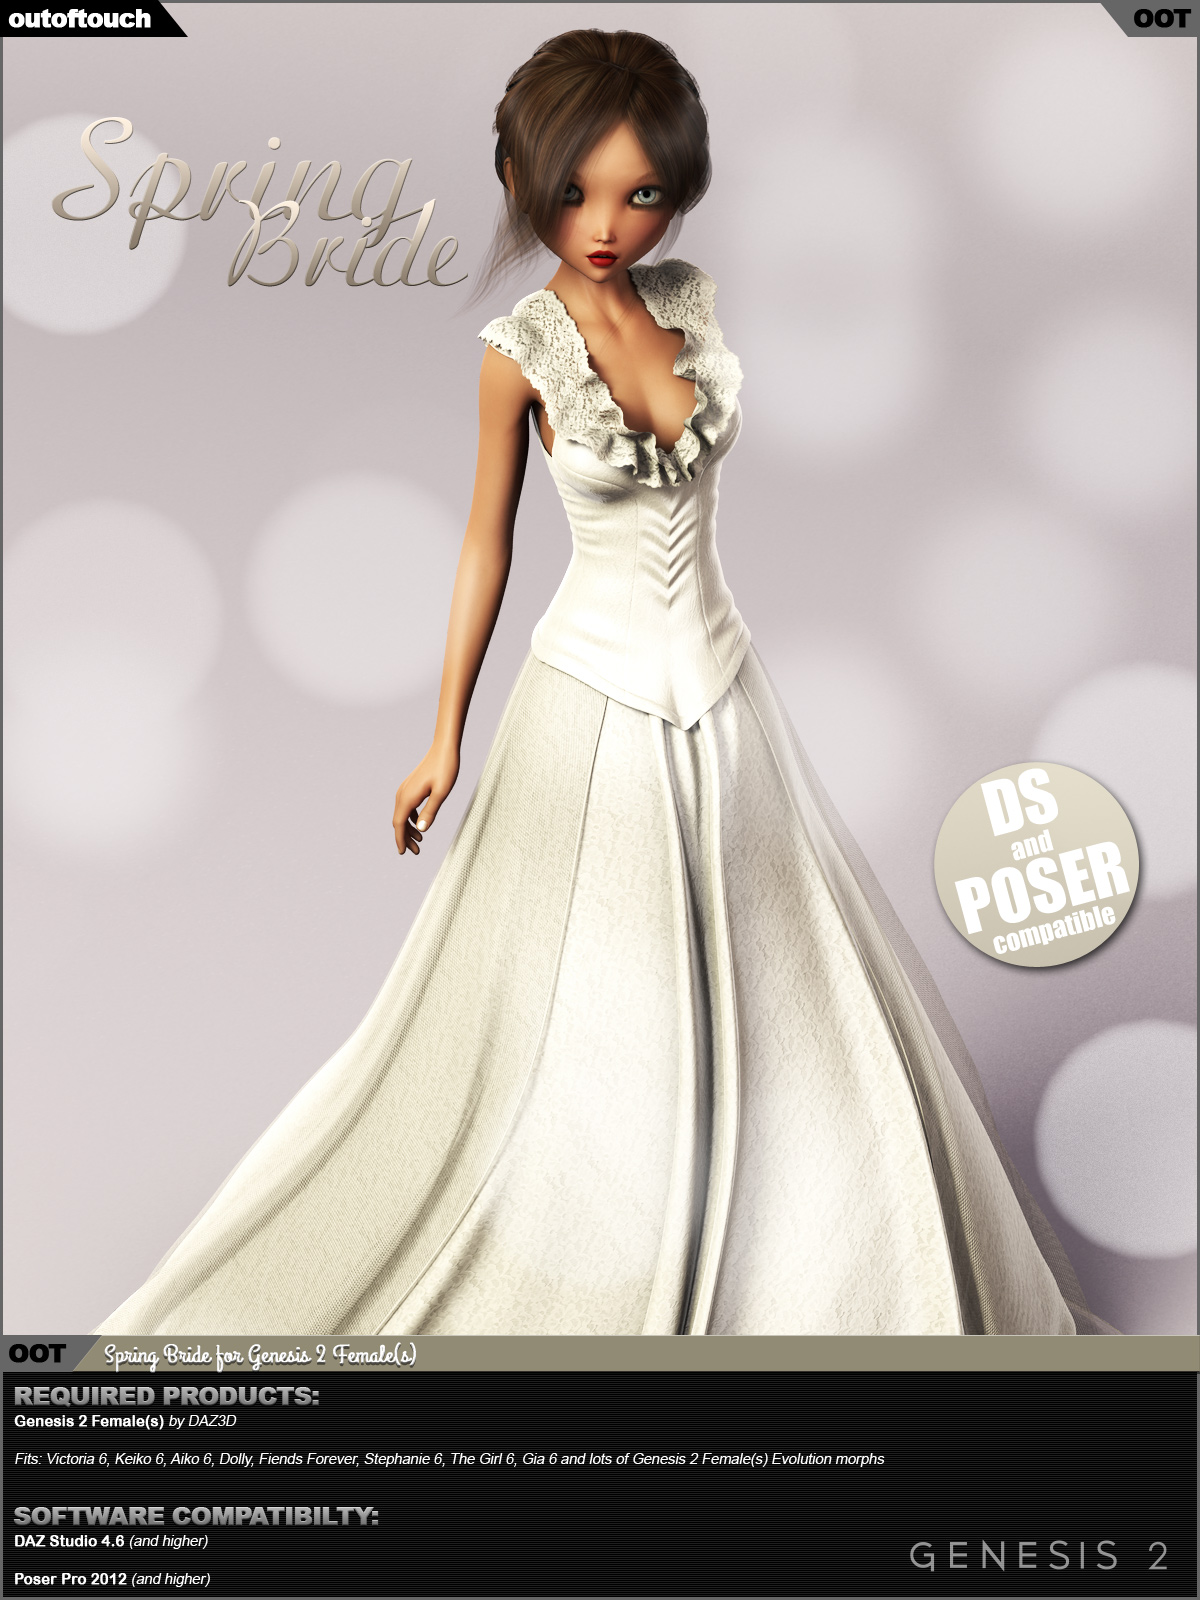 Spring Bride Gown for Genesis 2 Female(s)byoutoftouch()